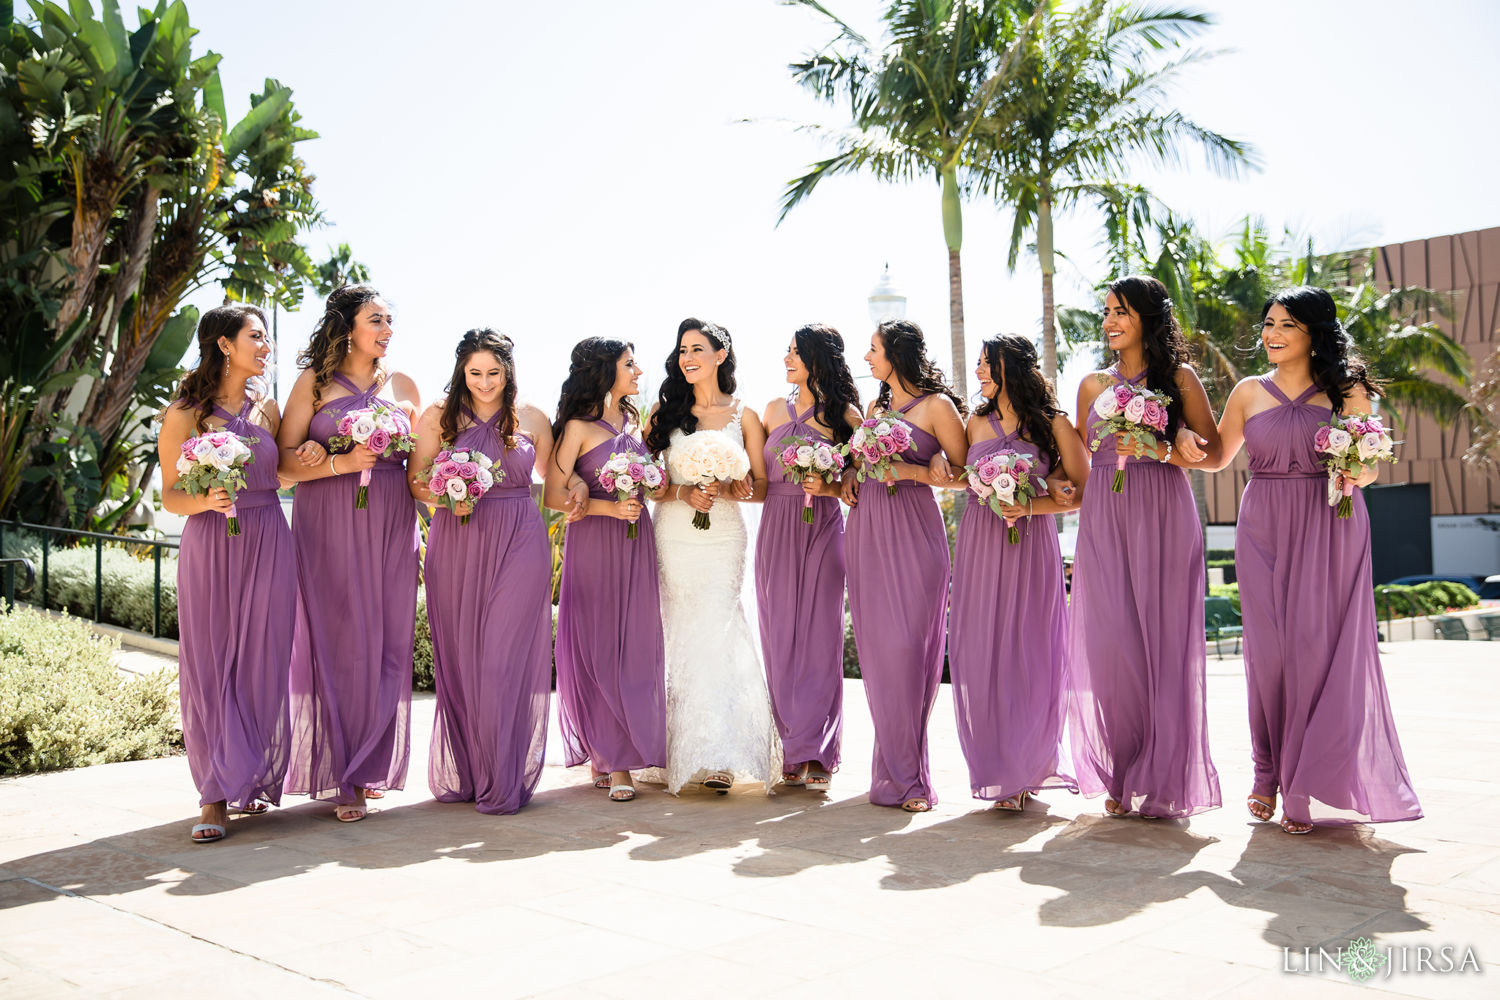 Bridesmaids Wedding Party Beverly Hills Courthouse St Mark Coptic Orthodox Church Wedding